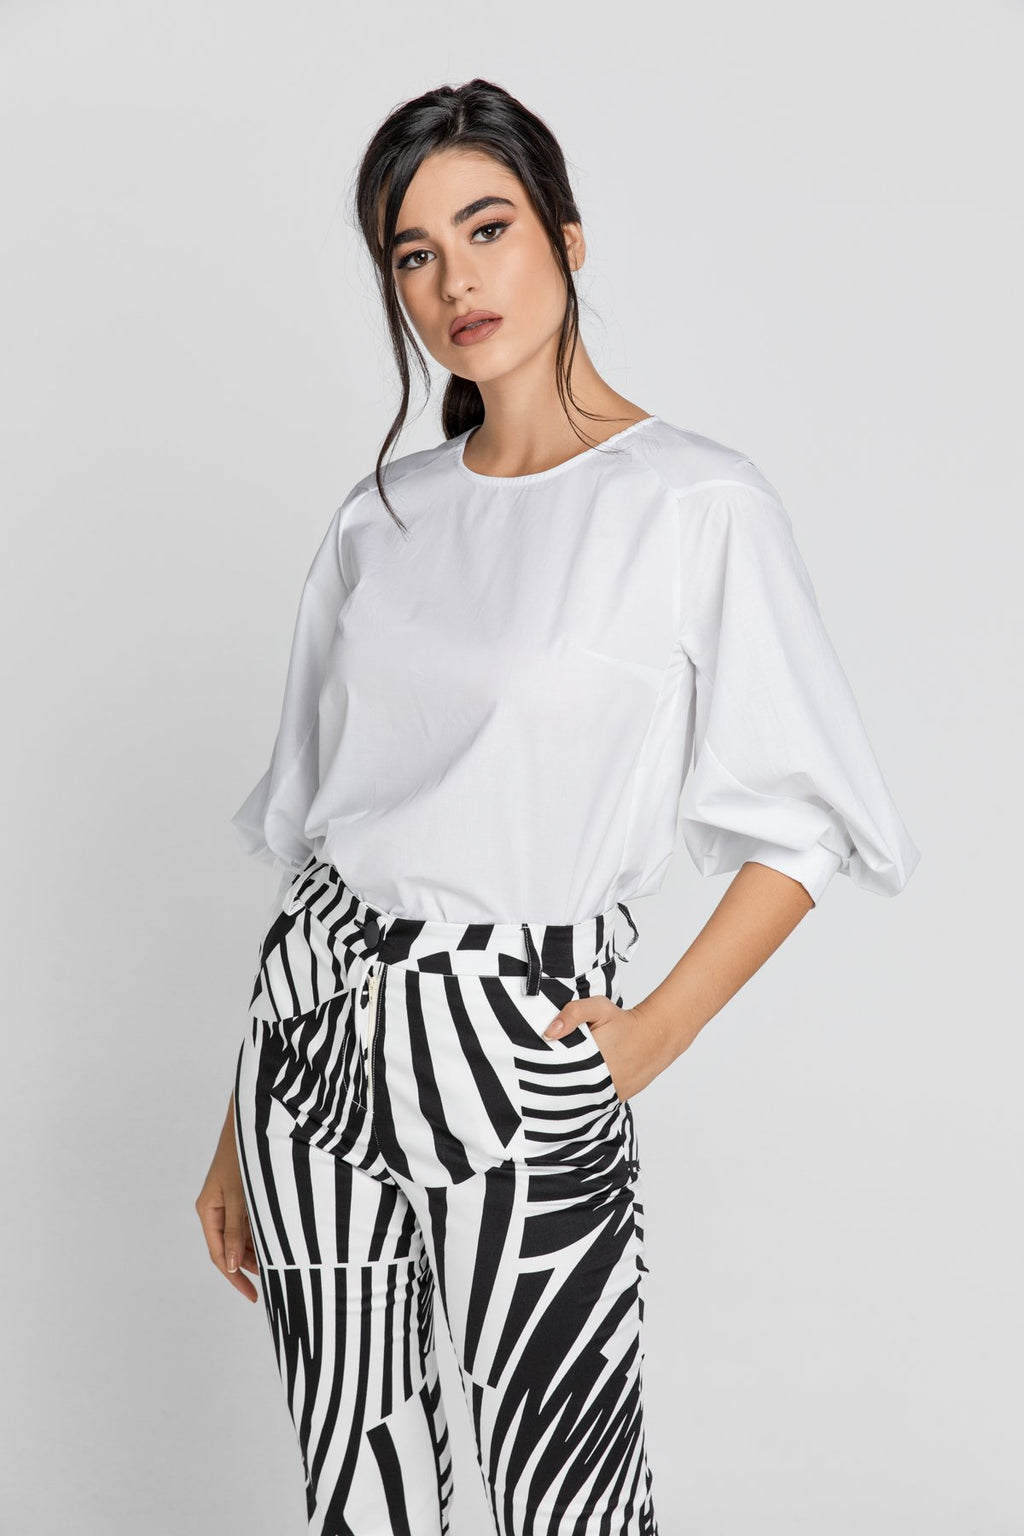 White Top With Bishop Sleeves - KATANA FASHION BOUTIQUE